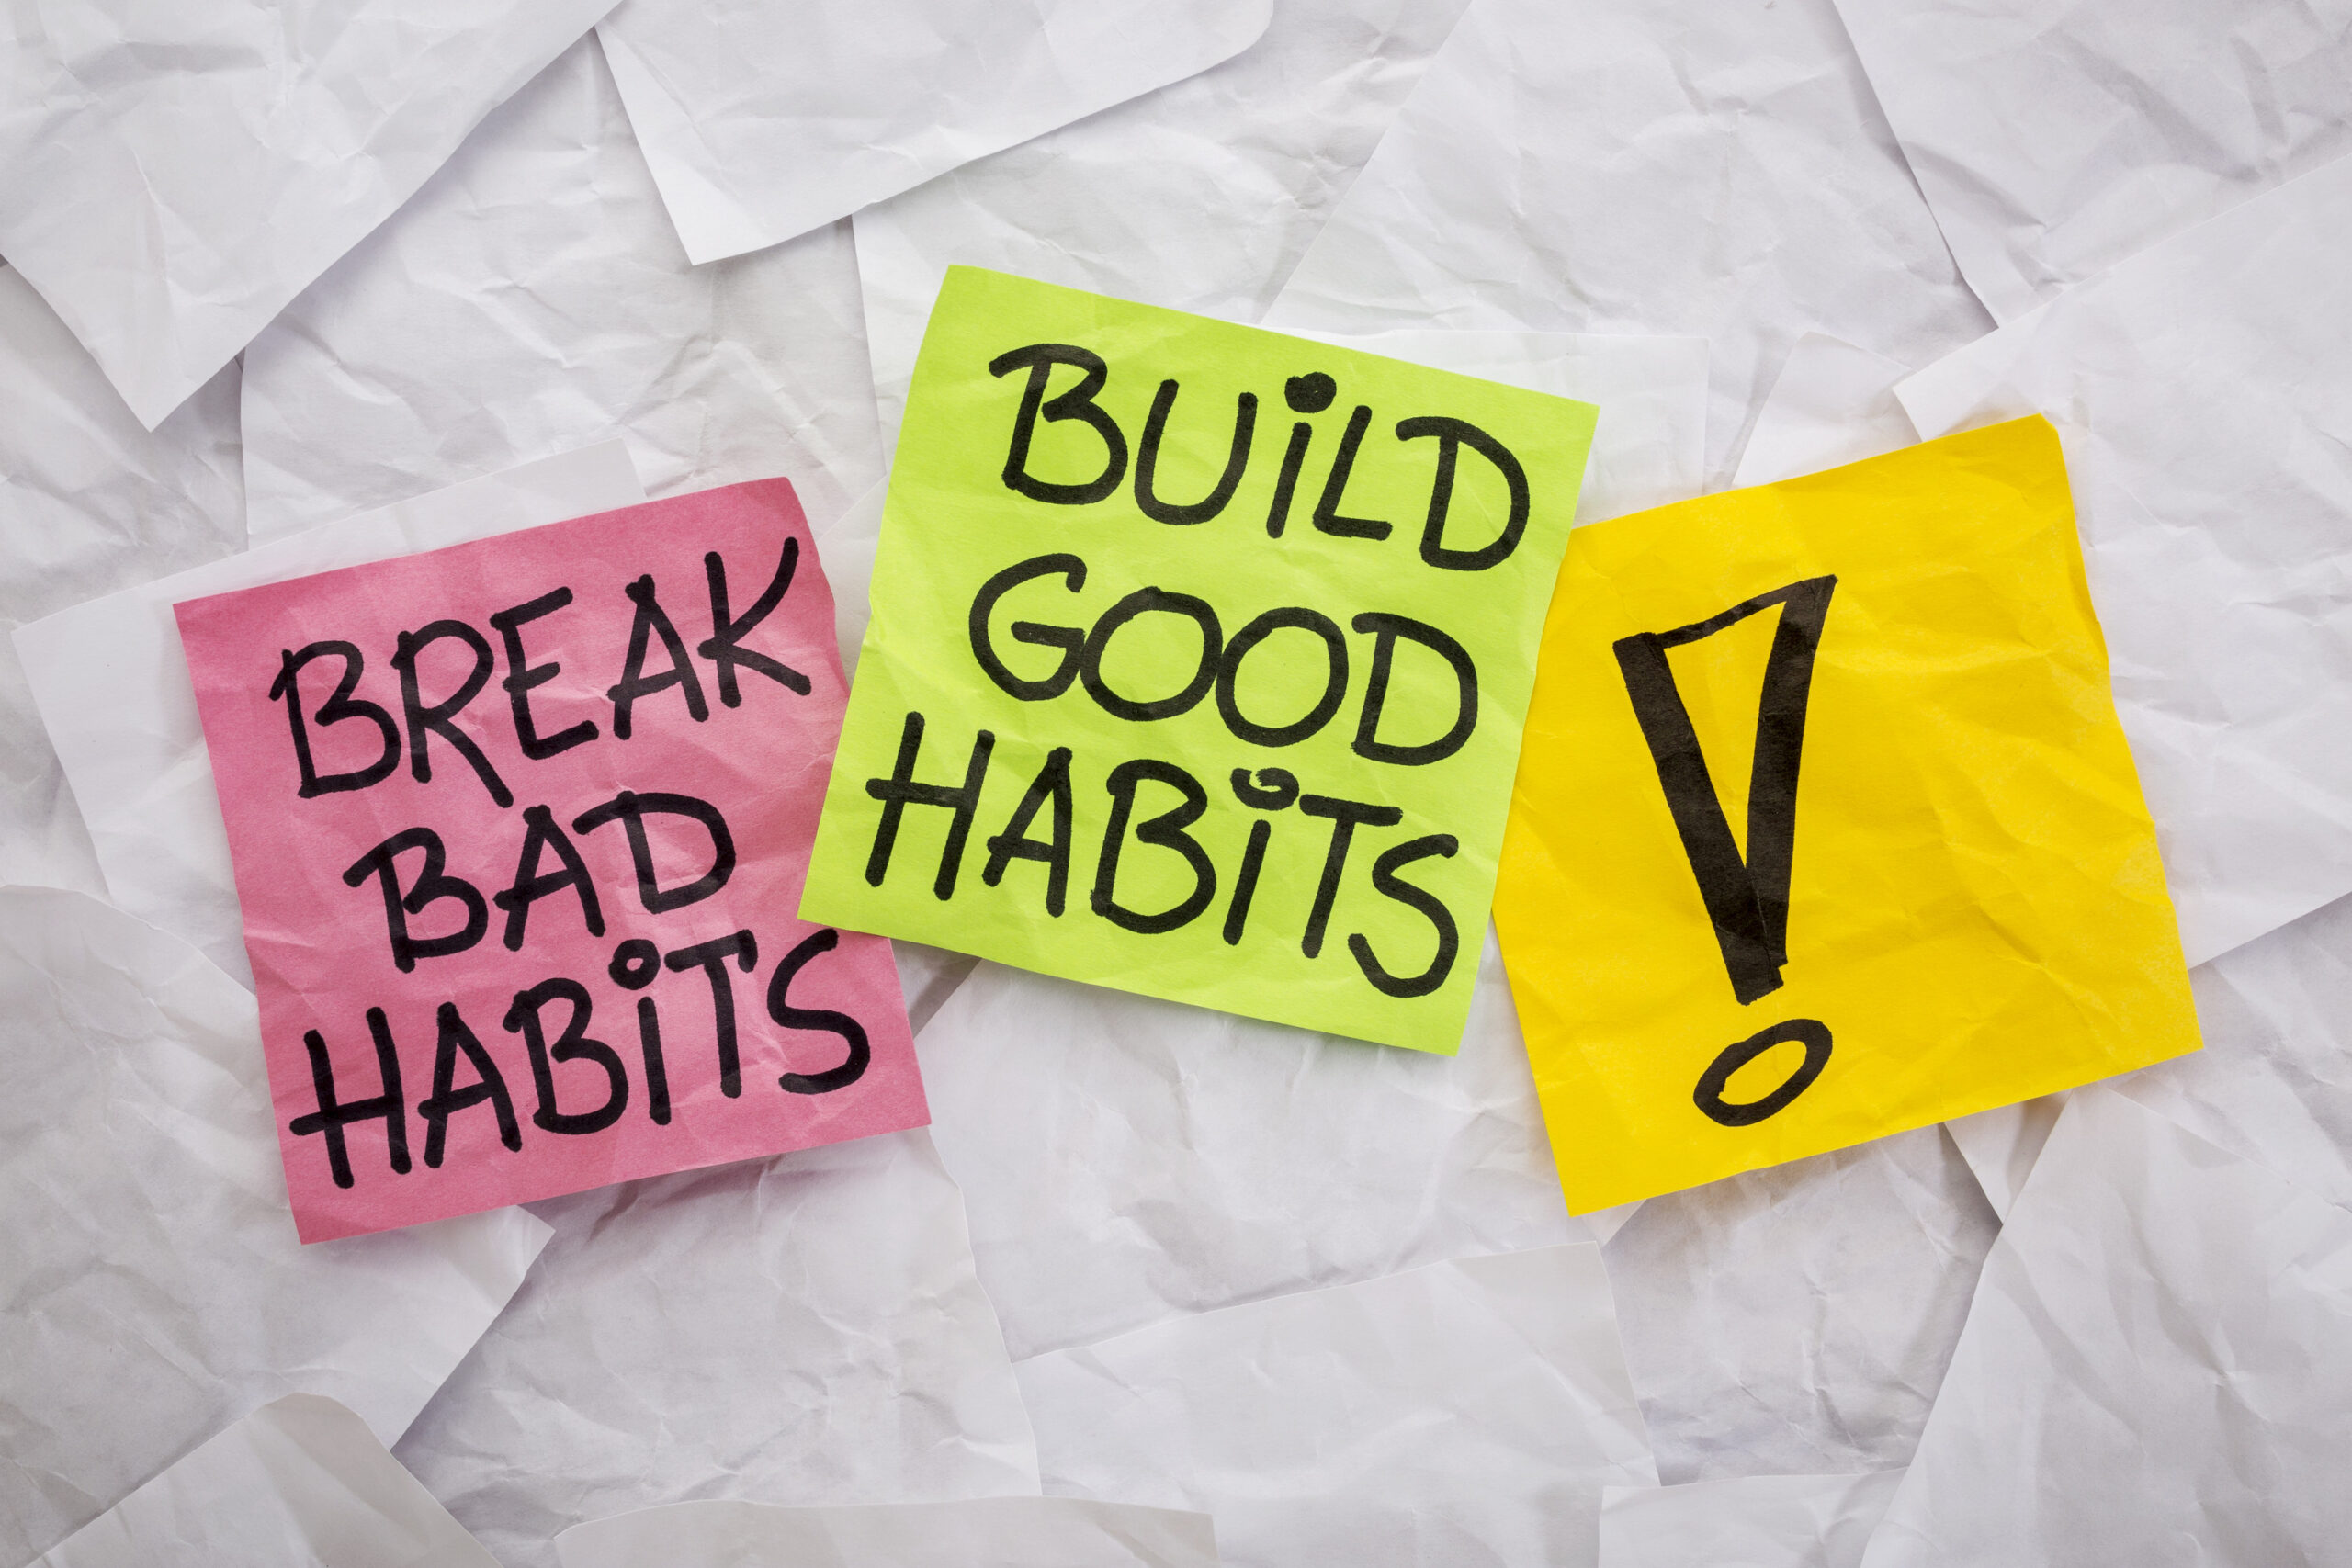 Ditch these poor work habits ASAP!